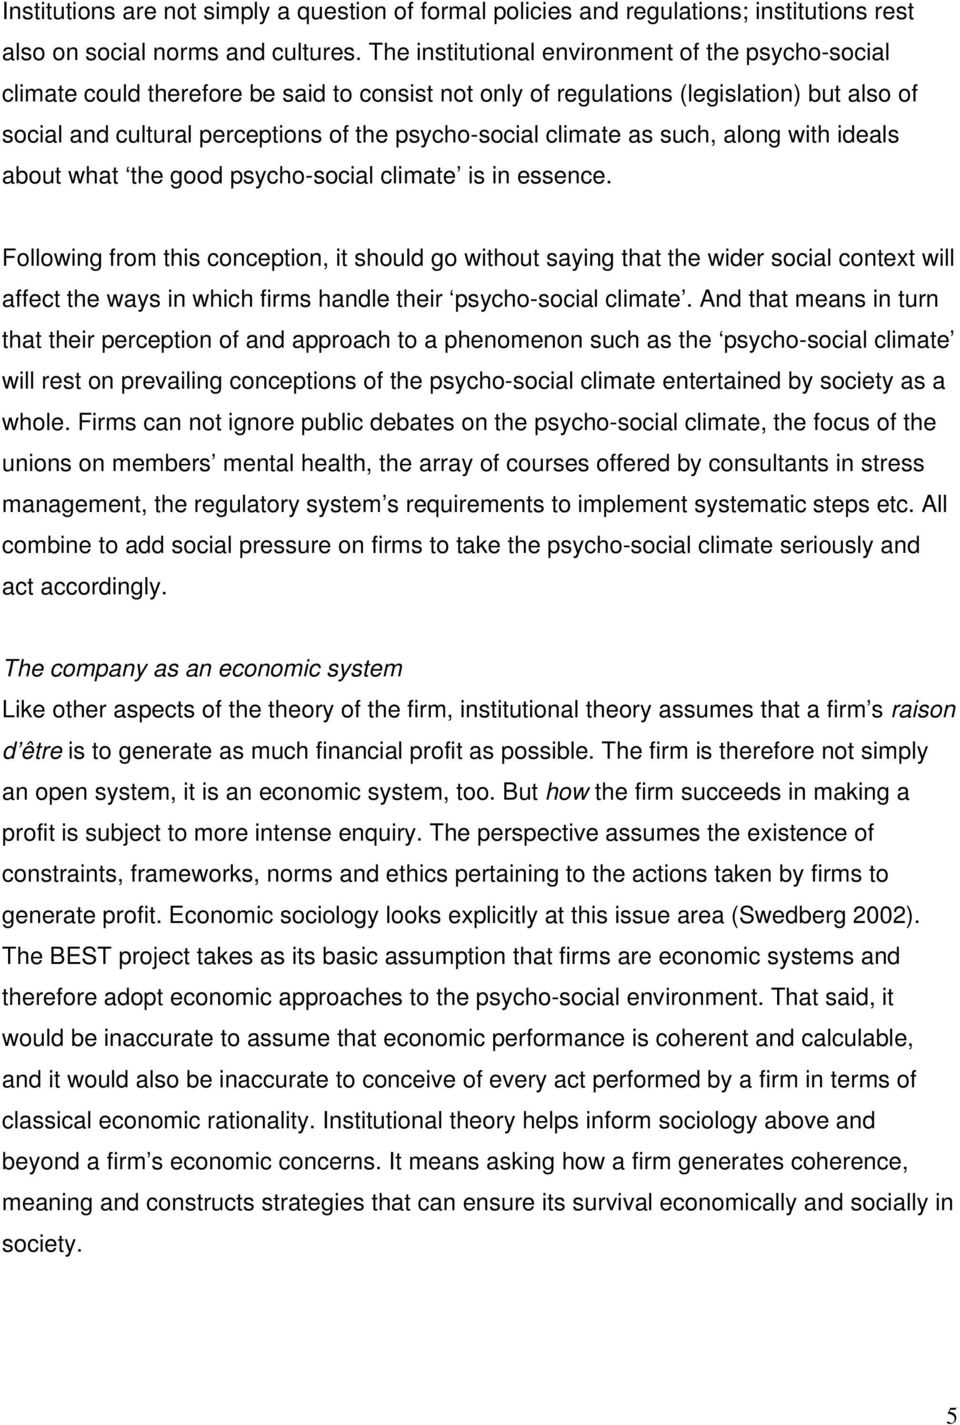 climate as such, along with ideals about what the good psycho-social climate is in essence.